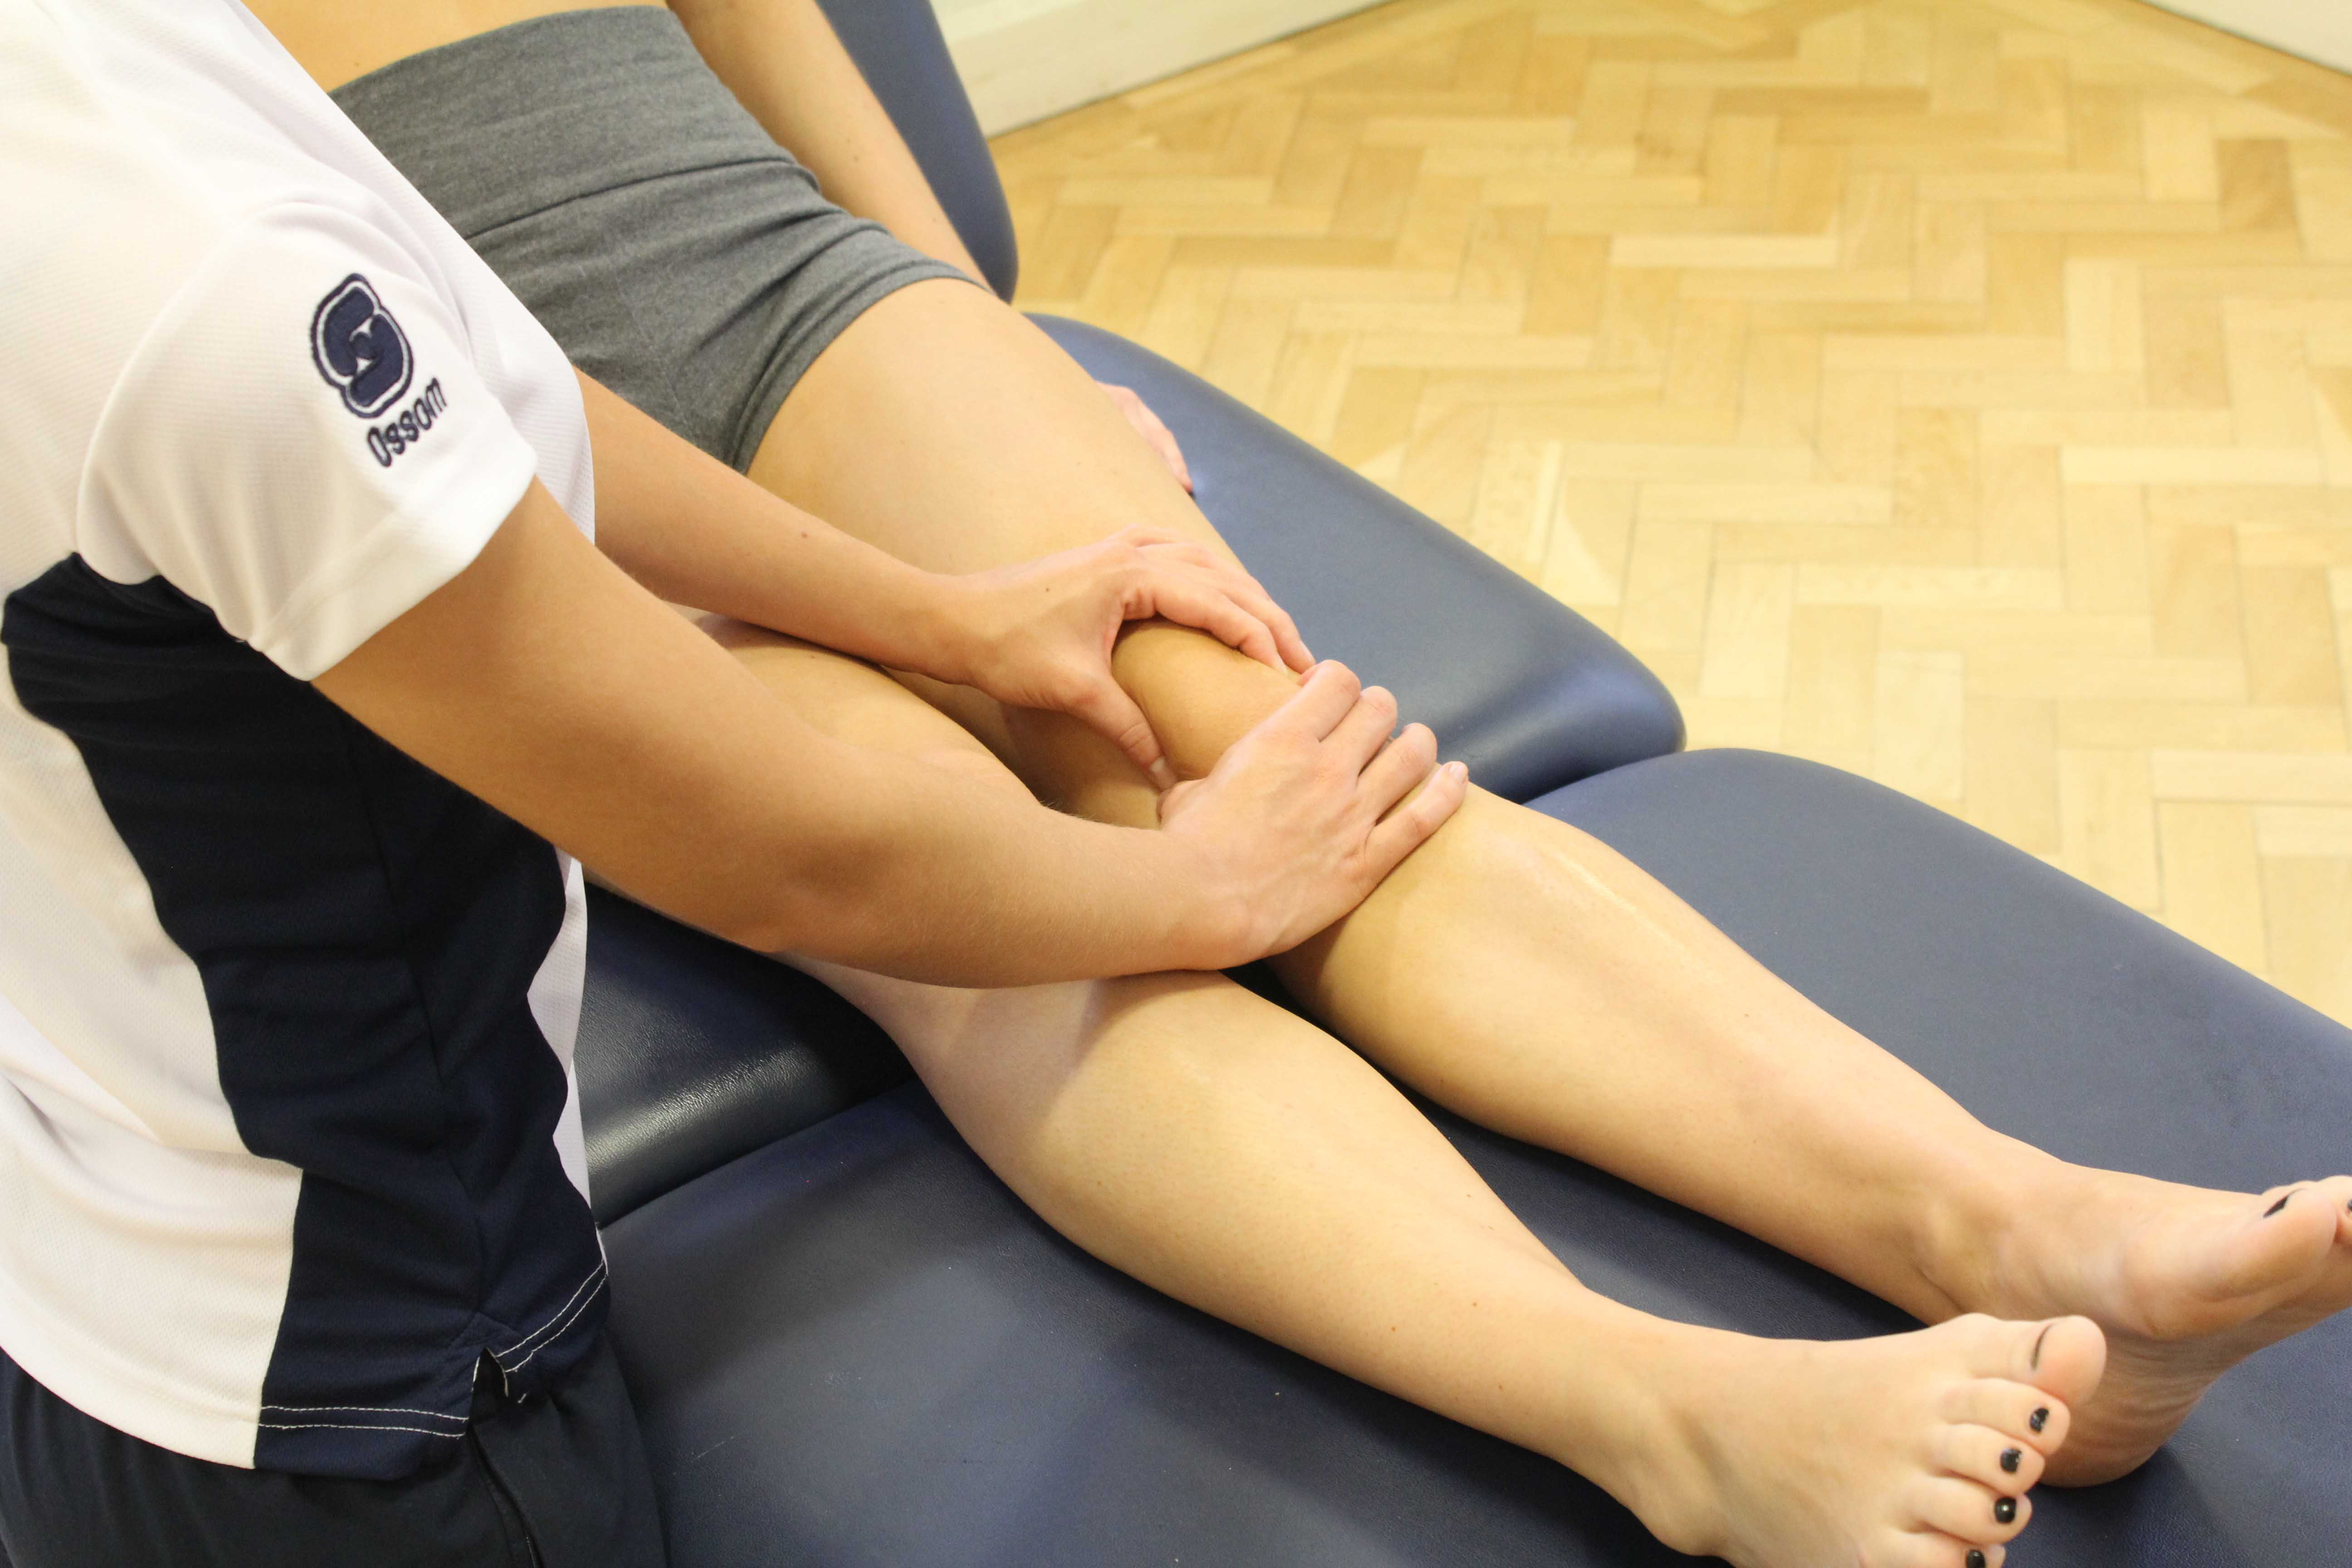 Mobilisations of the knee to relieve pain and stiffness